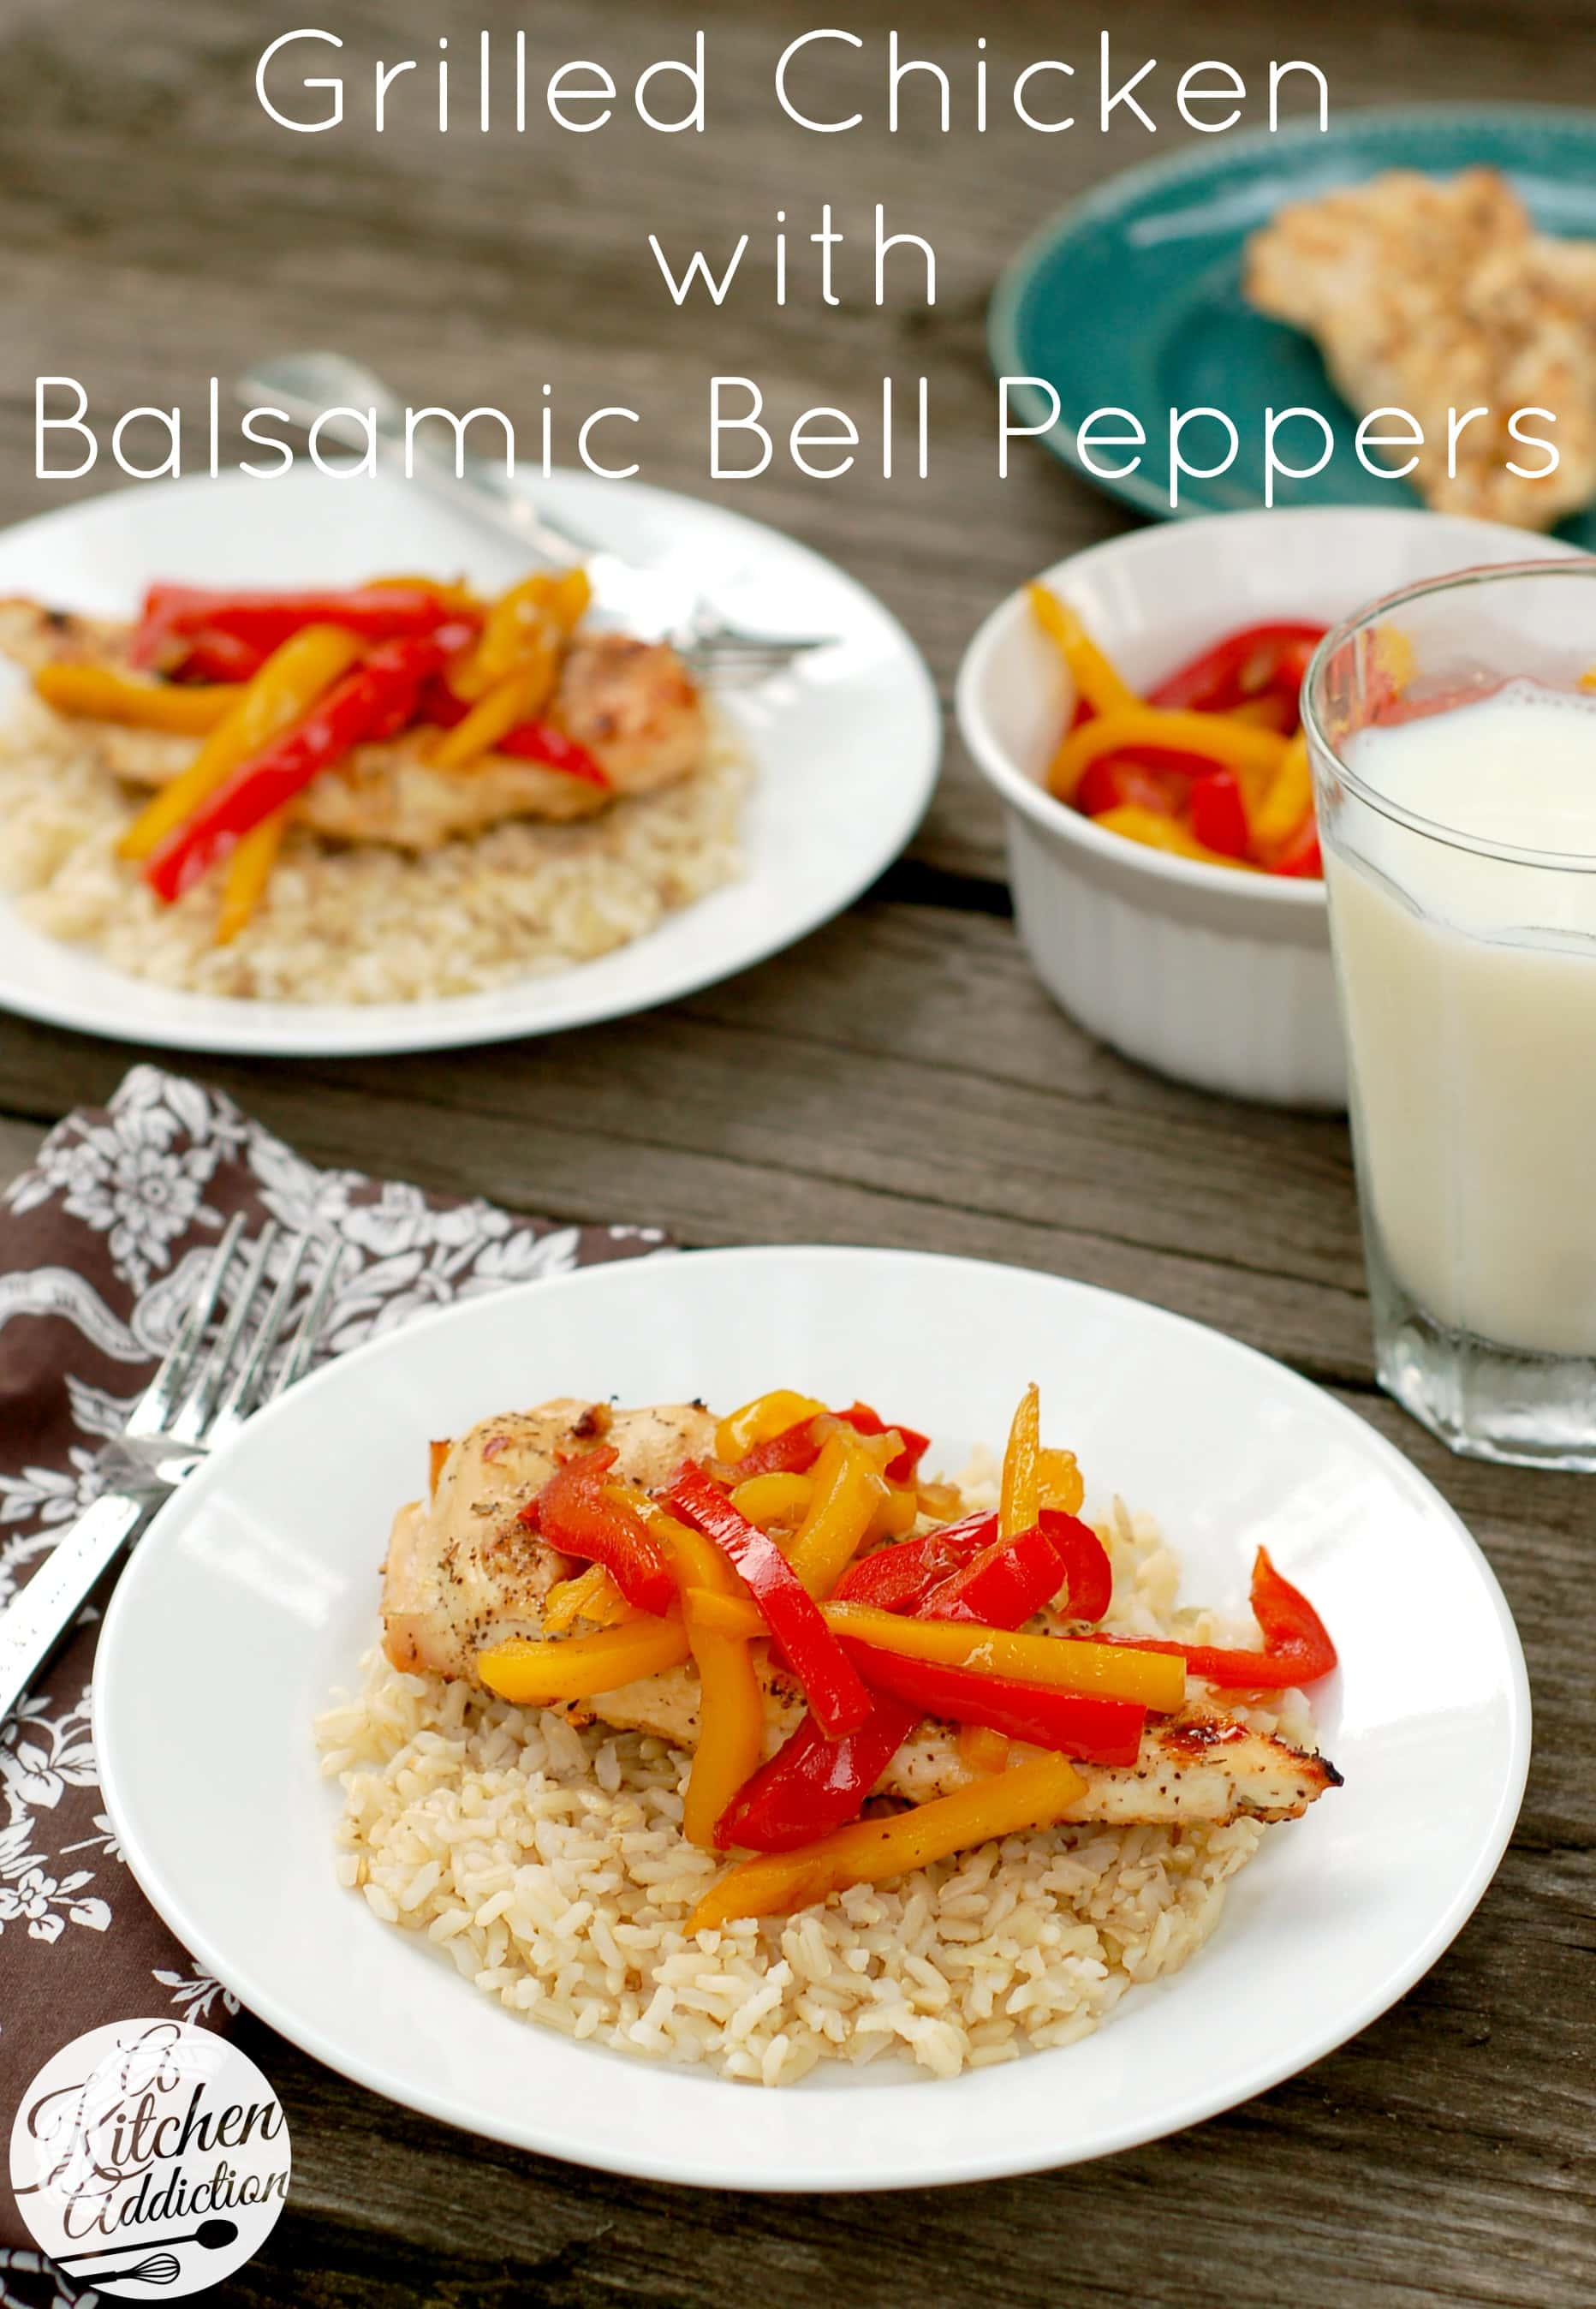 Grilled chicken with balsamic bell peppers a kitchen addiction grilled chicken with balsamic bell peppers recipe l a kitchen addiction forumfinder Image collections